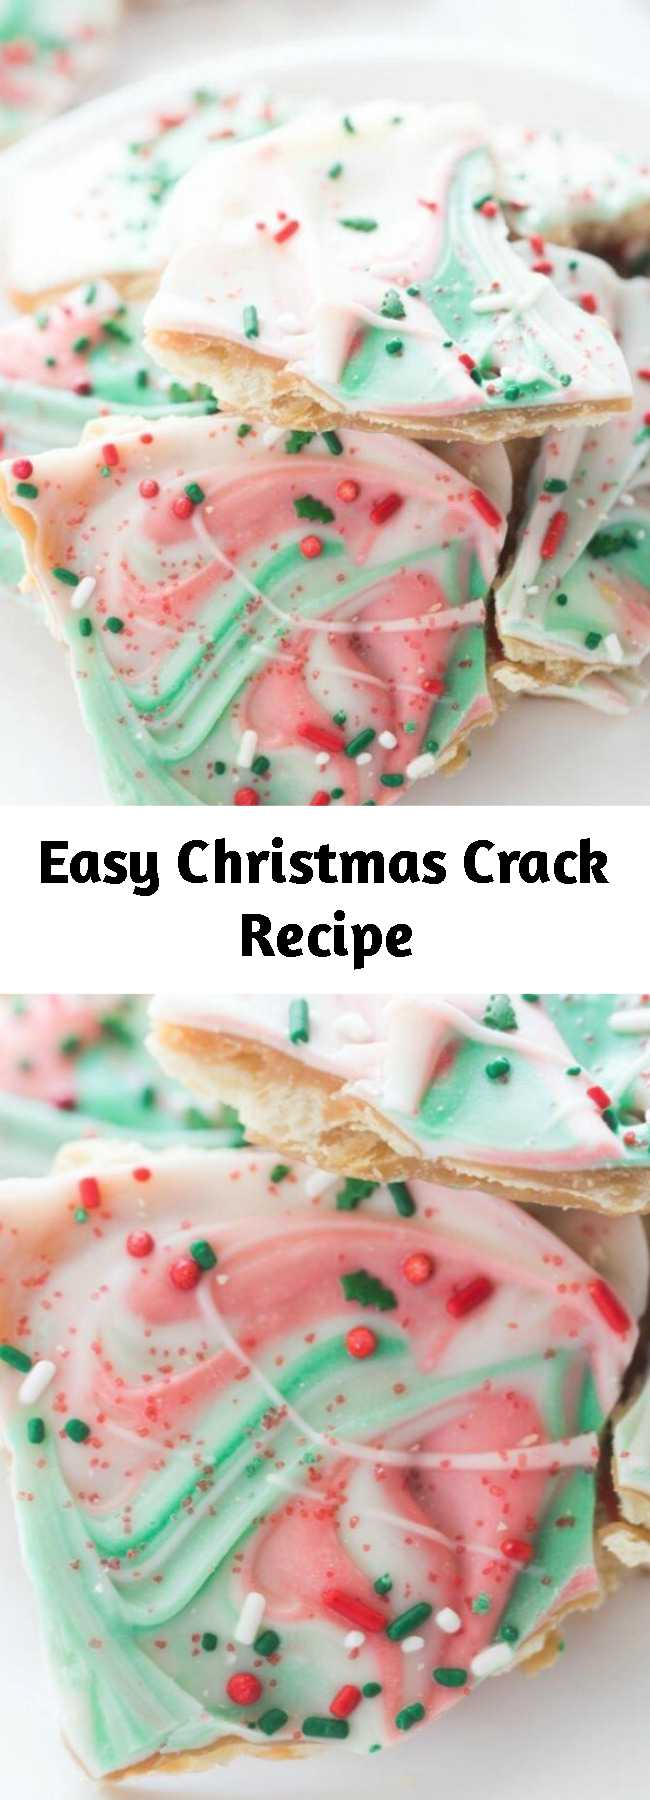 Easy Christmas Crack Recipe - Don't miss this Easy Christmas Crack Recipe for one of the best holiday party treats and gift recipes for your friends, neighbors, and co-workers! This is so easy to make and always a crowd favorite! #christmas #treats #desserts #gift #ideas #snacks #white #chocolate